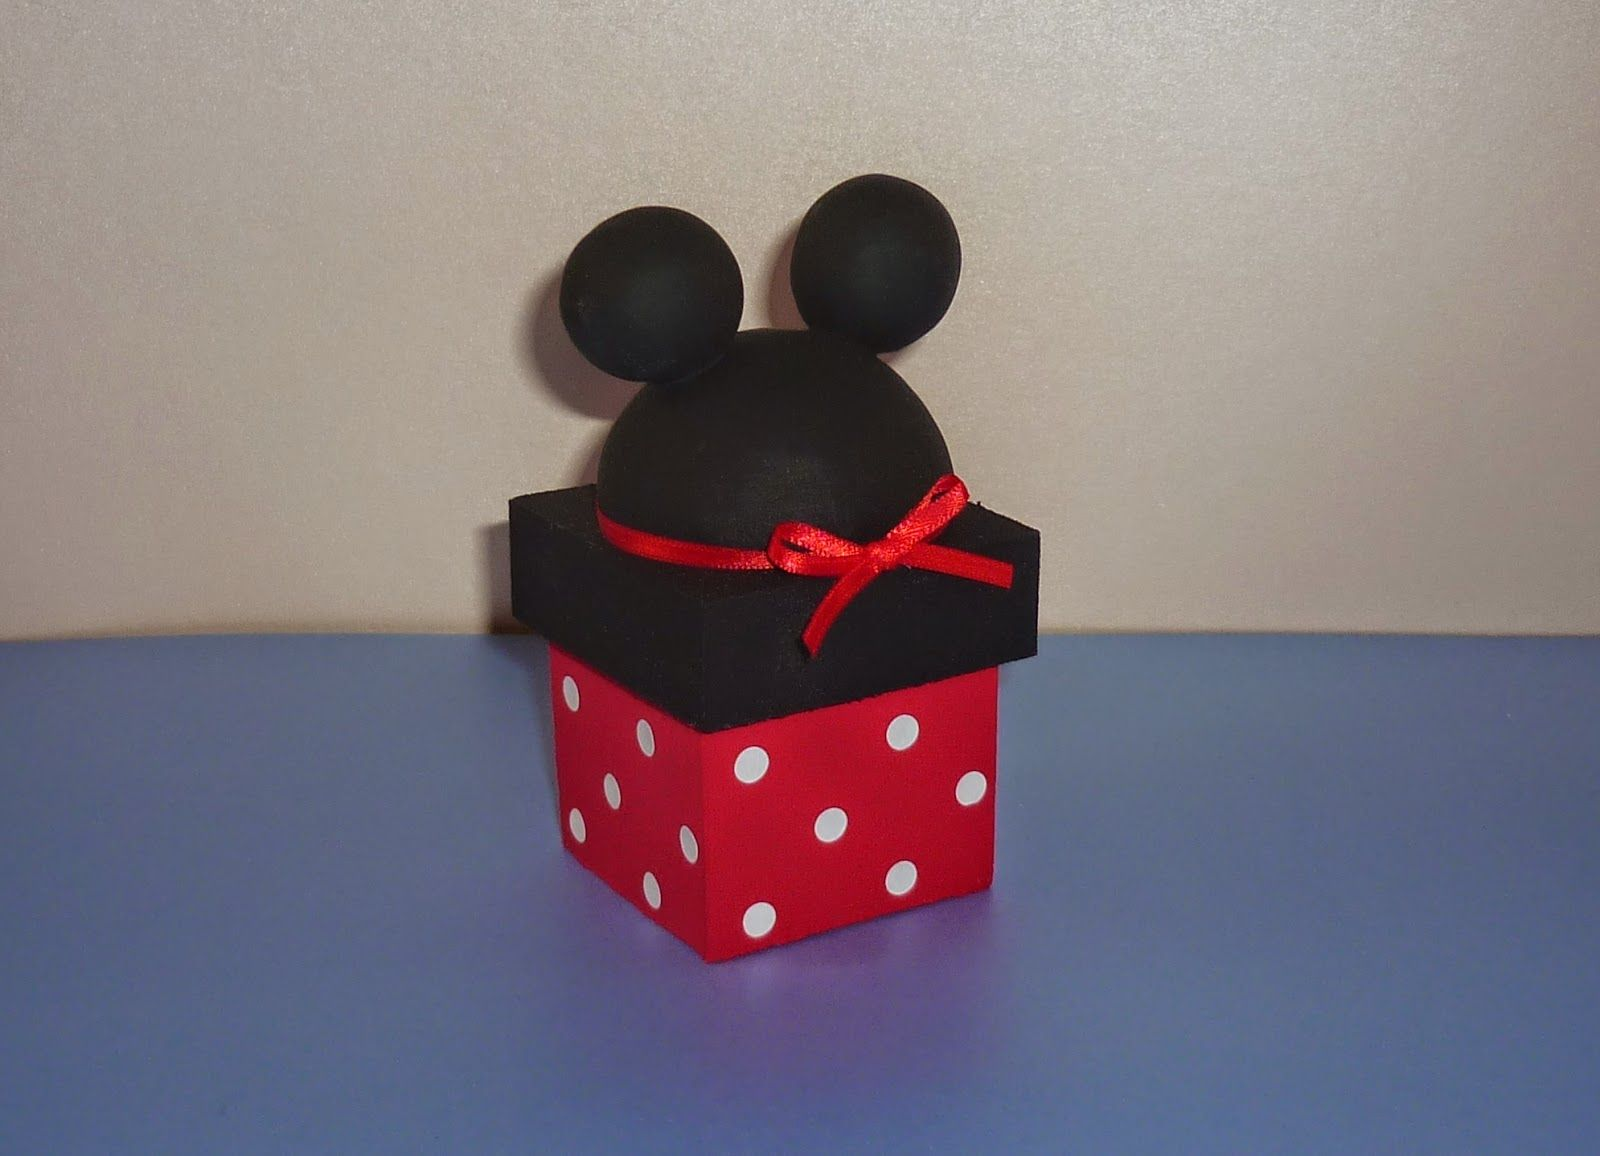 Minnie Mouse Explosion Box Minnie Exploding Box Disney Explosion Box All Occasion Surprise Box B Manualidades Hacer Cajas De Regalo Cajas De Regalo